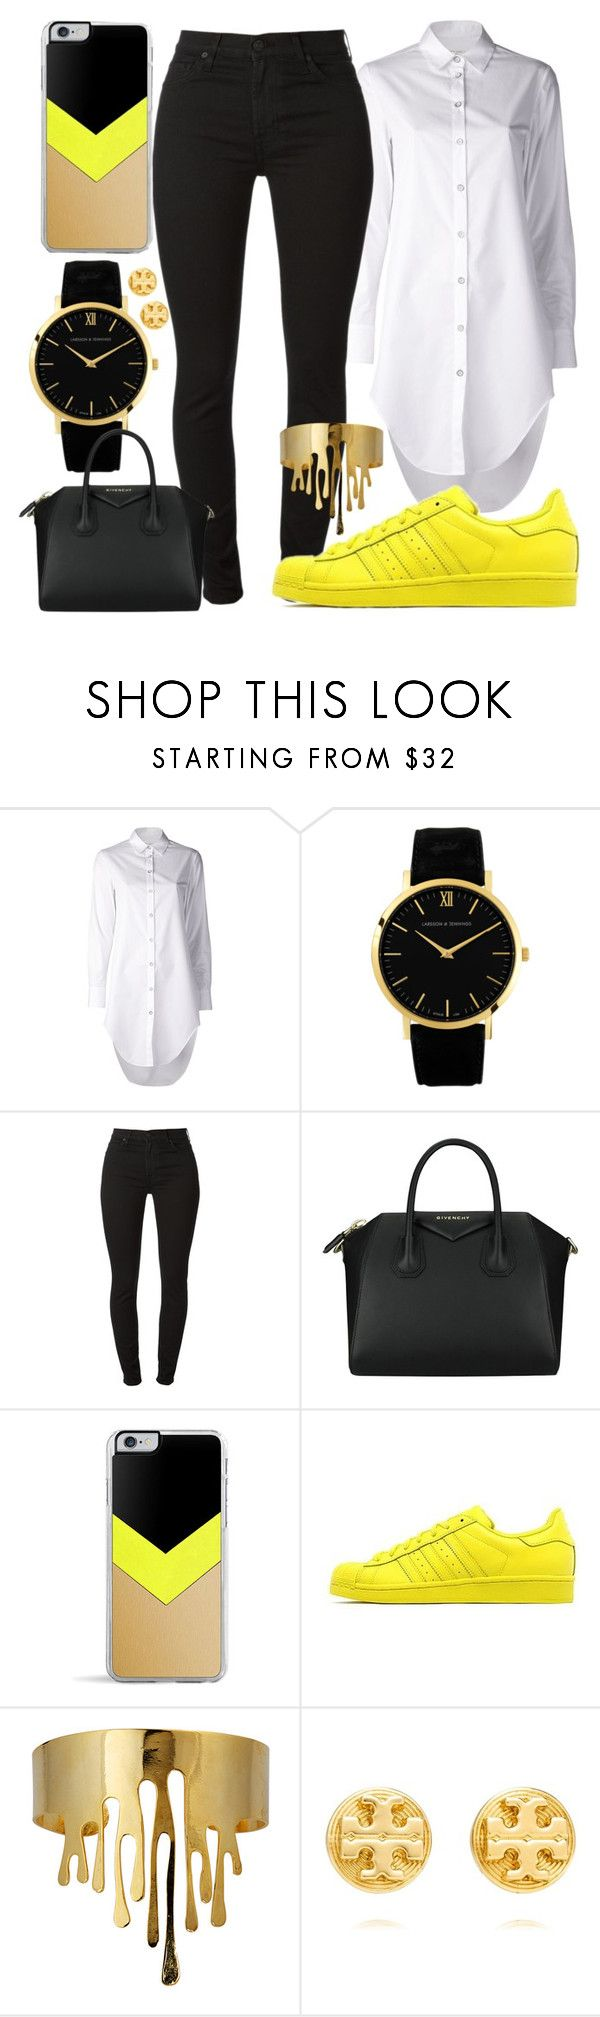 """""""434."""" by tyra-bryant ❤ liked on Polyvore featuring rag & bone, Larsson & Jennings, 7 For All Mankind, Givenchy, Forever 21, adidas Originals, Eina Ahluwalia and Tory Burch"""